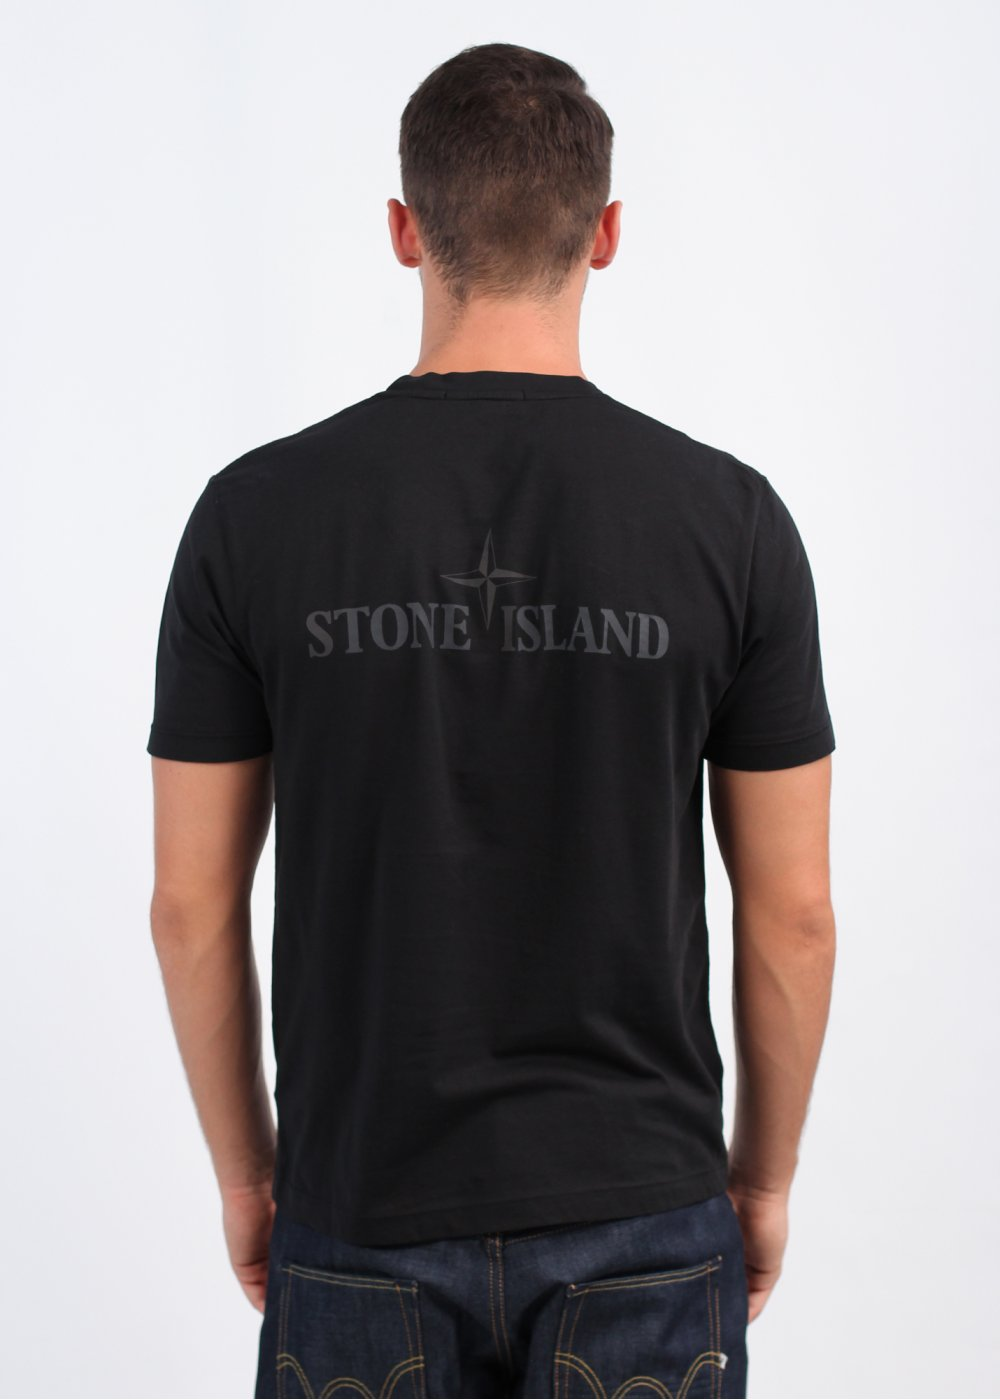 stone island reflective logo tee black. Black Bedroom Furniture Sets. Home Design Ideas